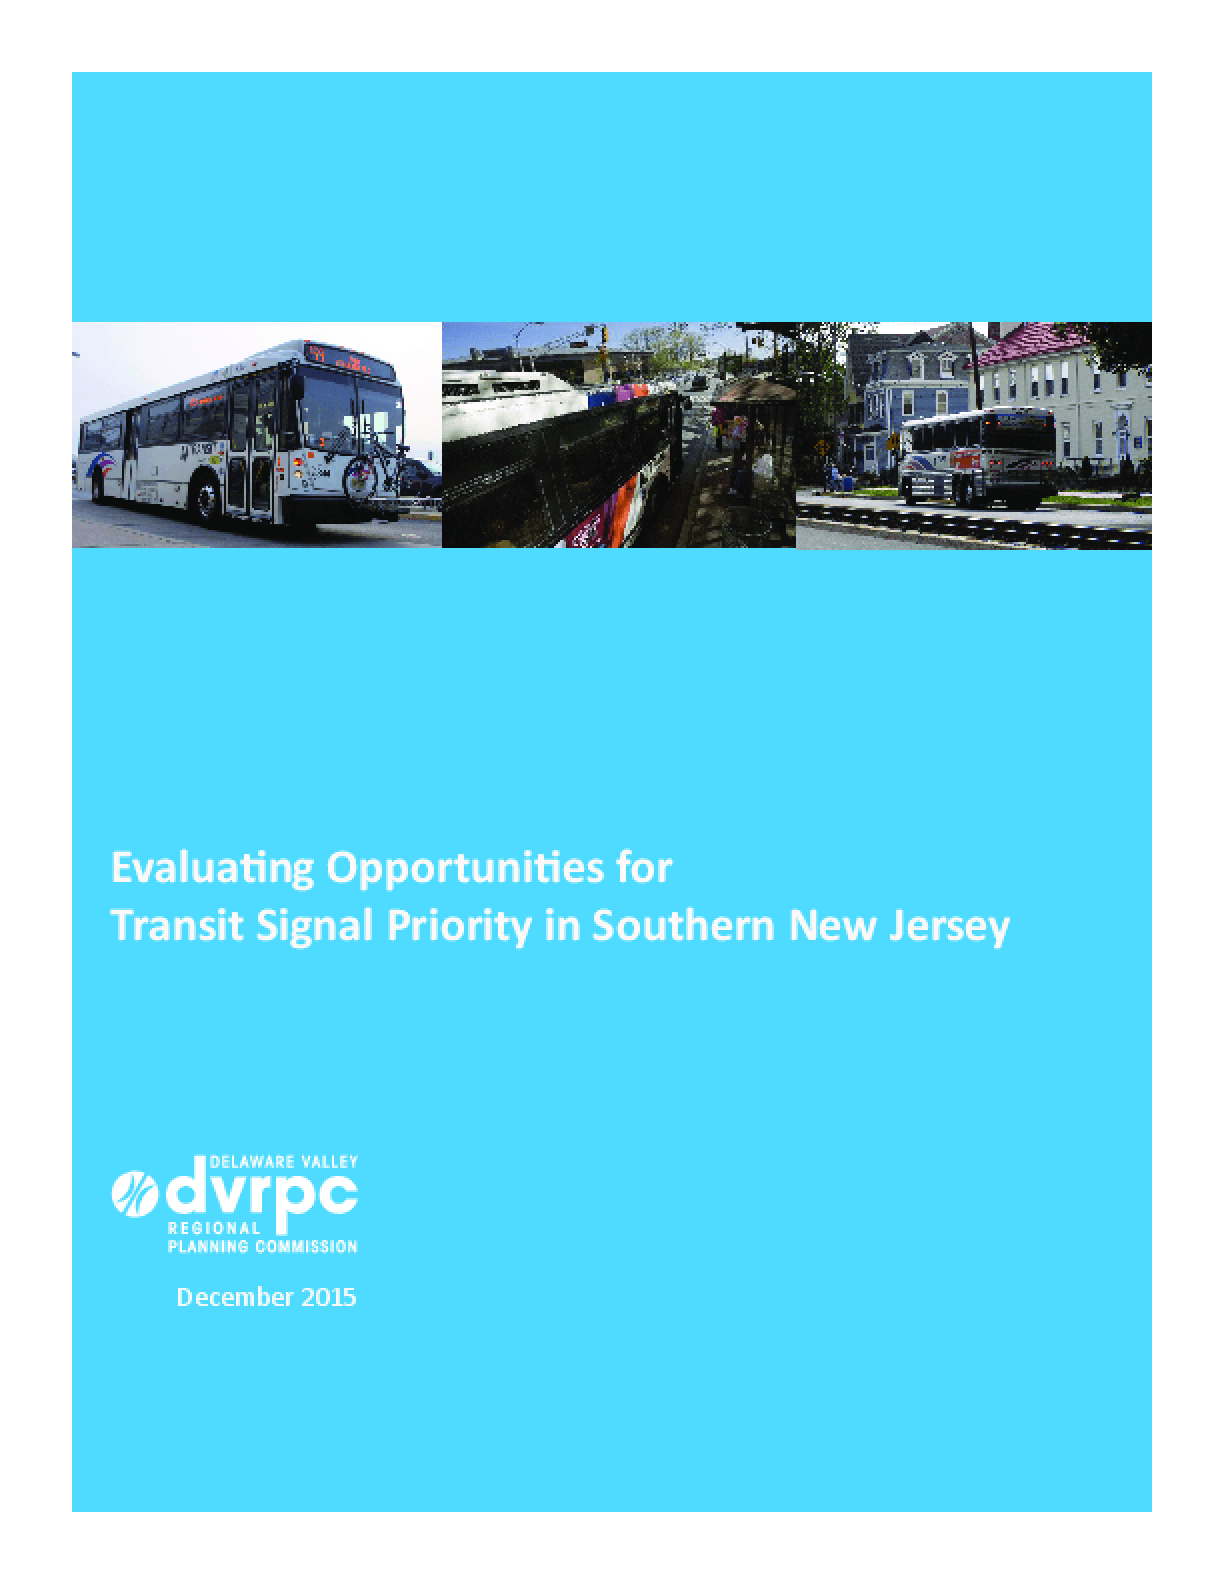 Evaluating Opportunities for Transit Signal Priority in Southern New Jersey